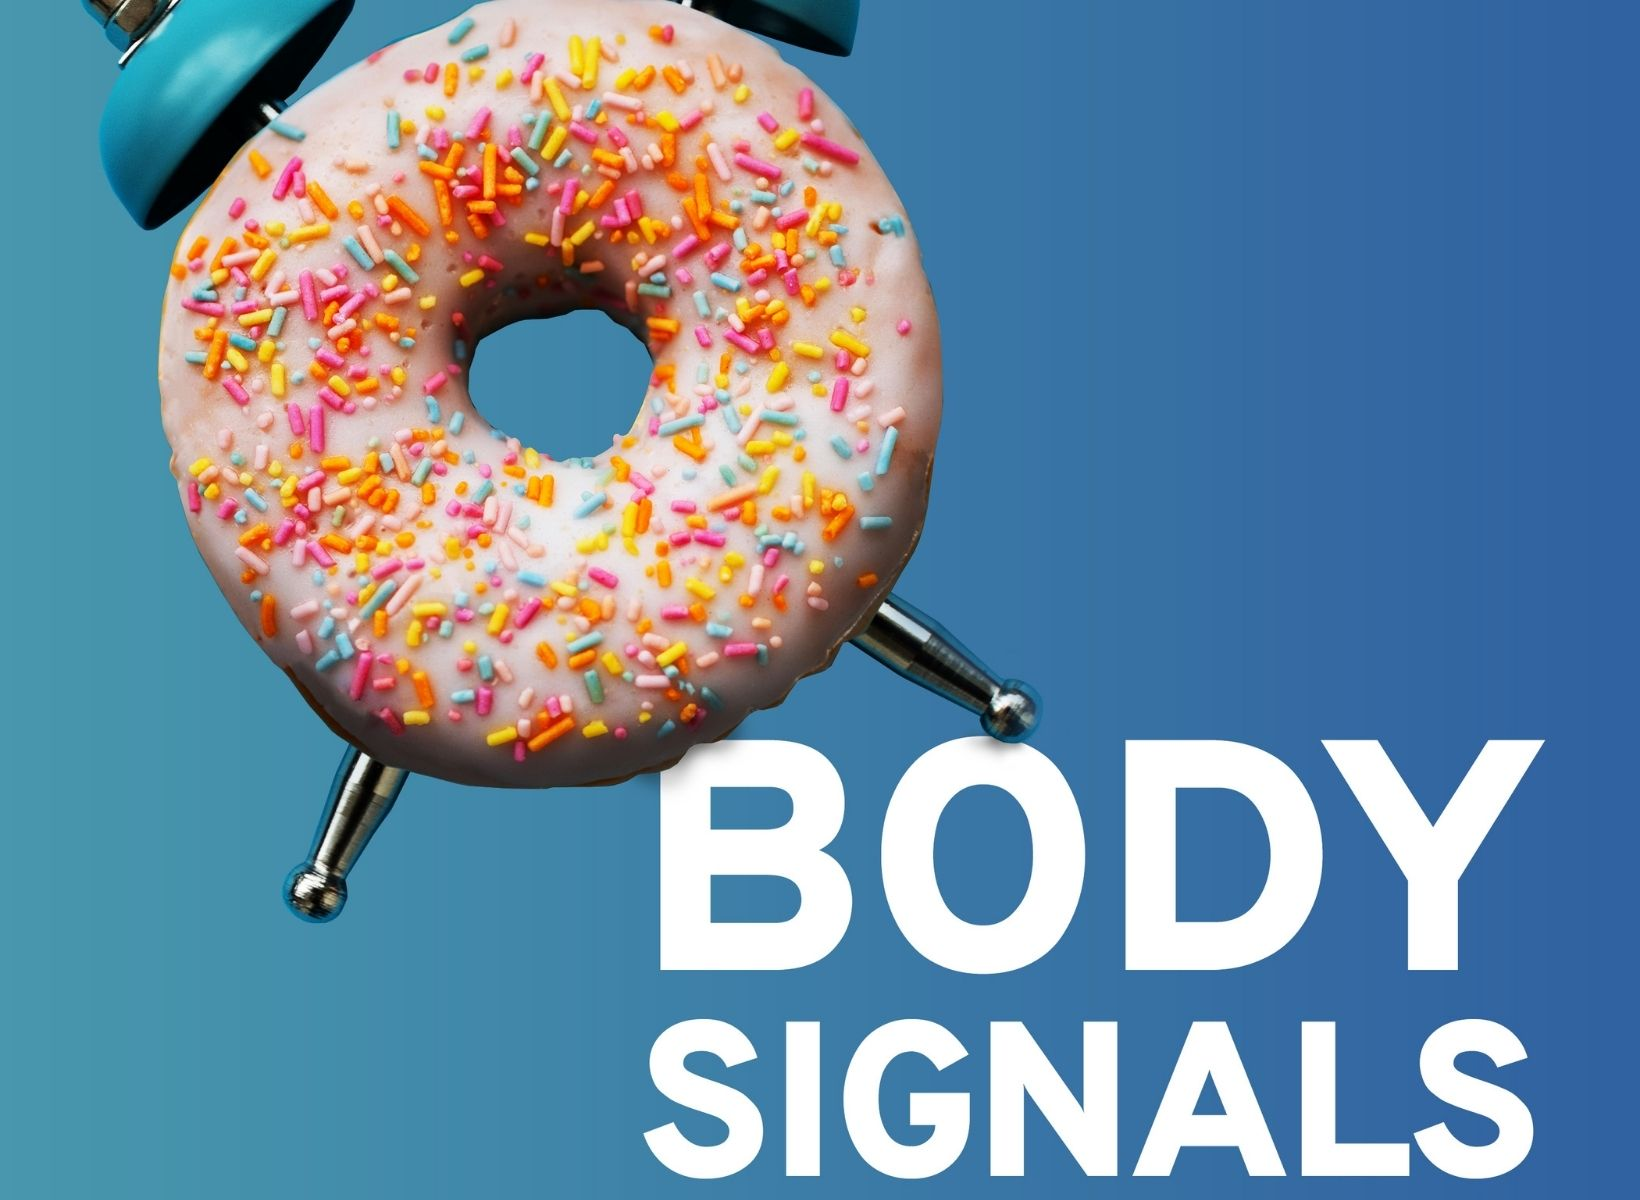 Body Signals podcast image of an alarm clock whose face is a frosted donut with sprinkles